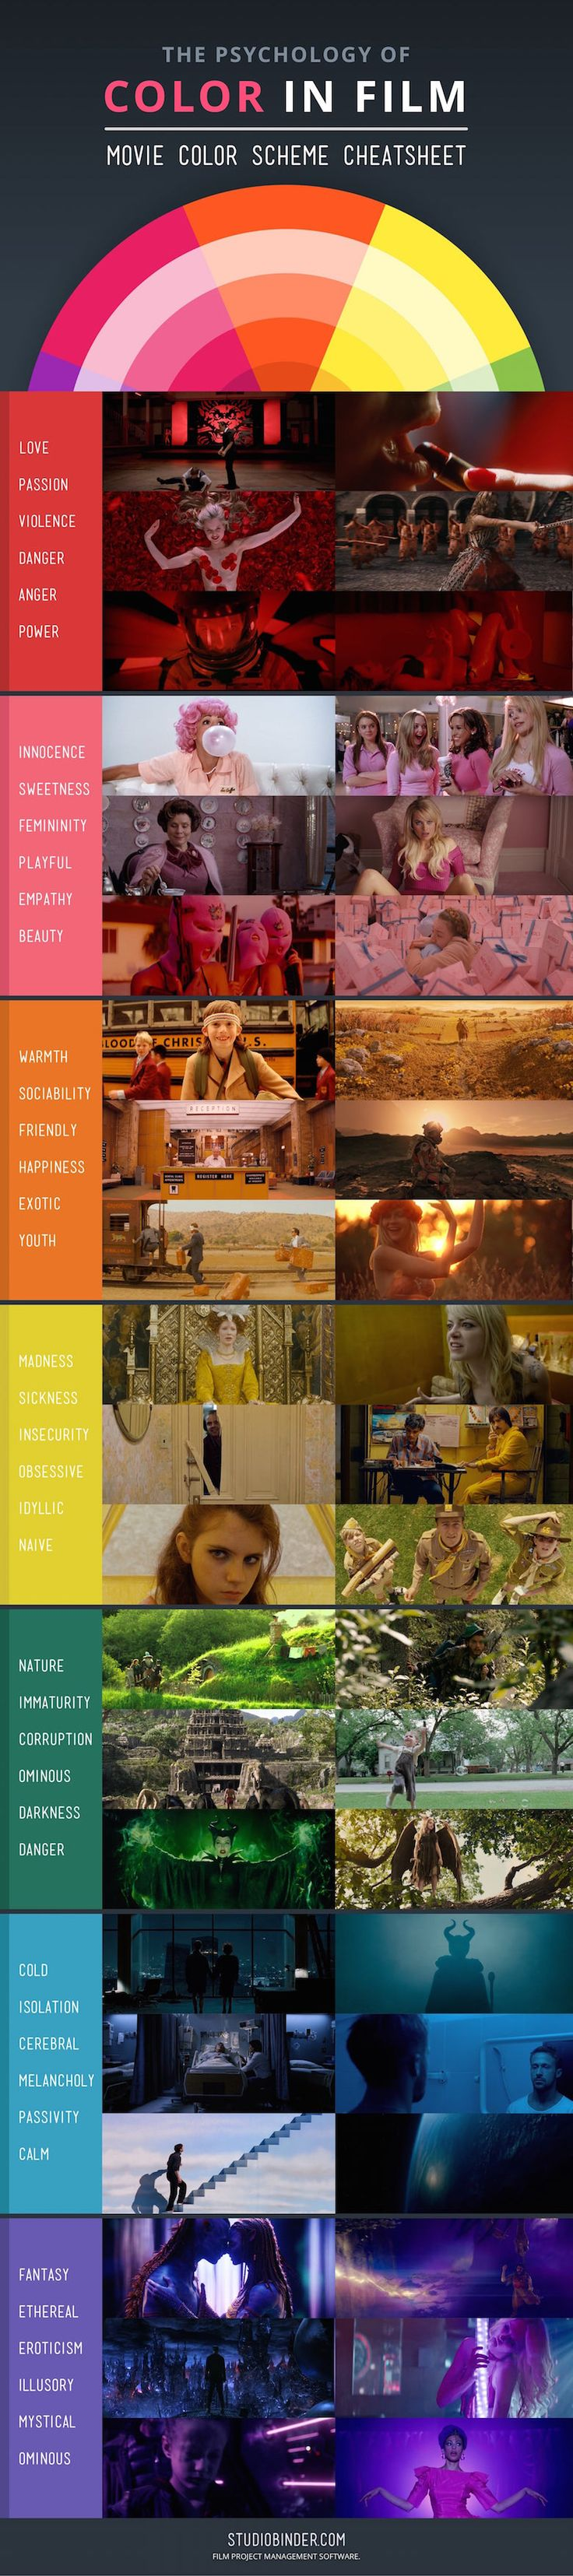 In filmmaking, color is used to set the tone of a scene before any of the actors have even uttered a word. Red is used to denote passion, danger or power. Pinksignifies innocence, femininity and beauty.Yellow is associated with joy, naivety and insanity. Blue symbolizes isolation, passivity and calmness. StudioBinderhas come up with an interesting […]